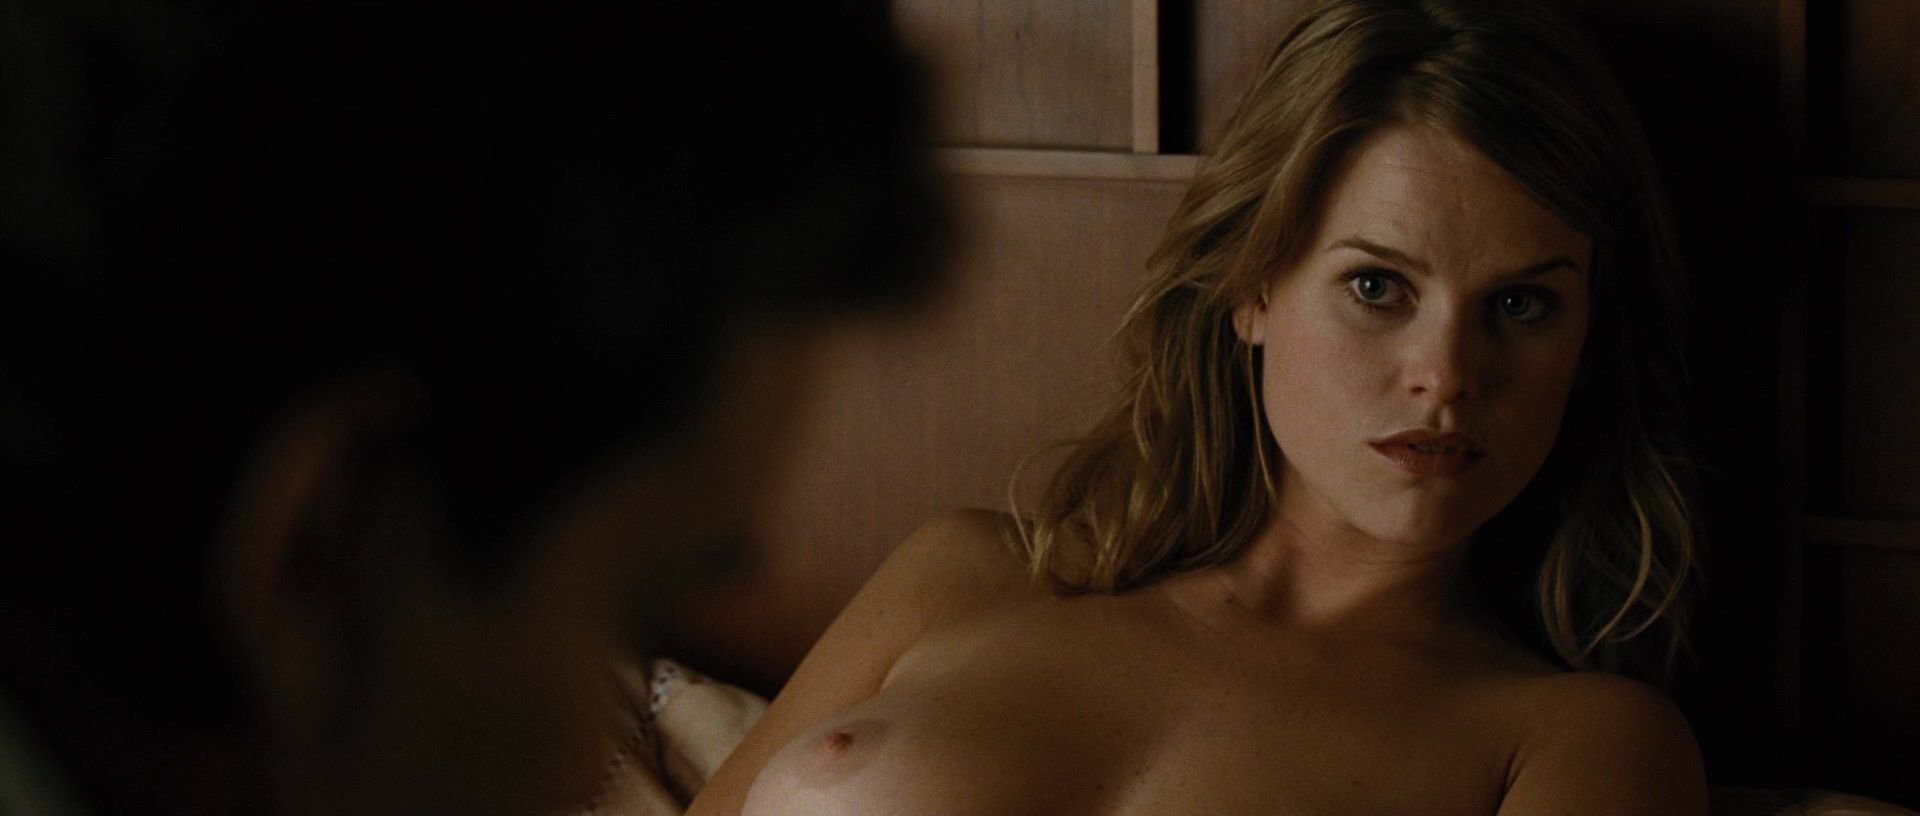 alice eve tits